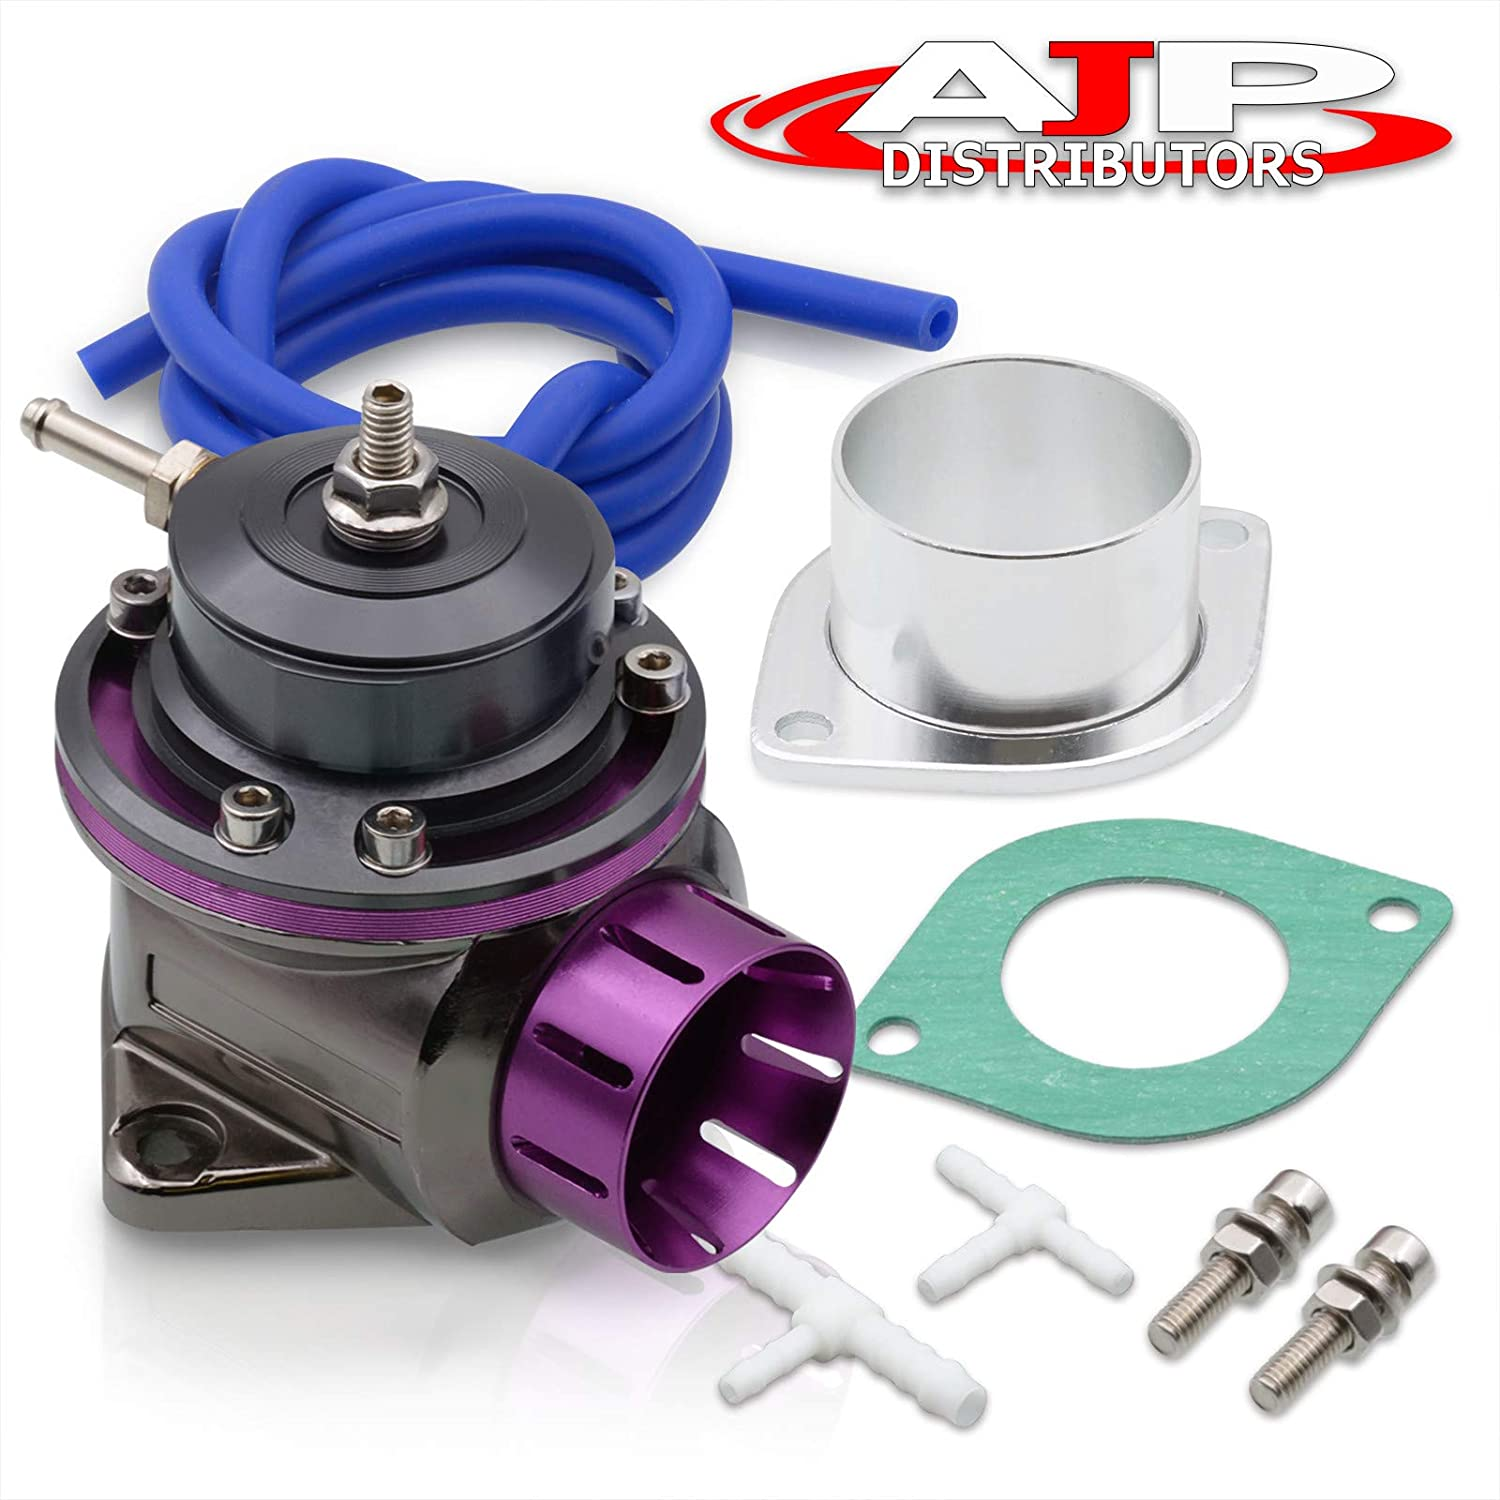 AJP Distributors Performance Upgrade Racing JDM Universal Purple Lip Aluminum Billet Turbo Turbocharger Recirculate Air Boost Adjustable PSI Blow Off Valve BOV Type-FV